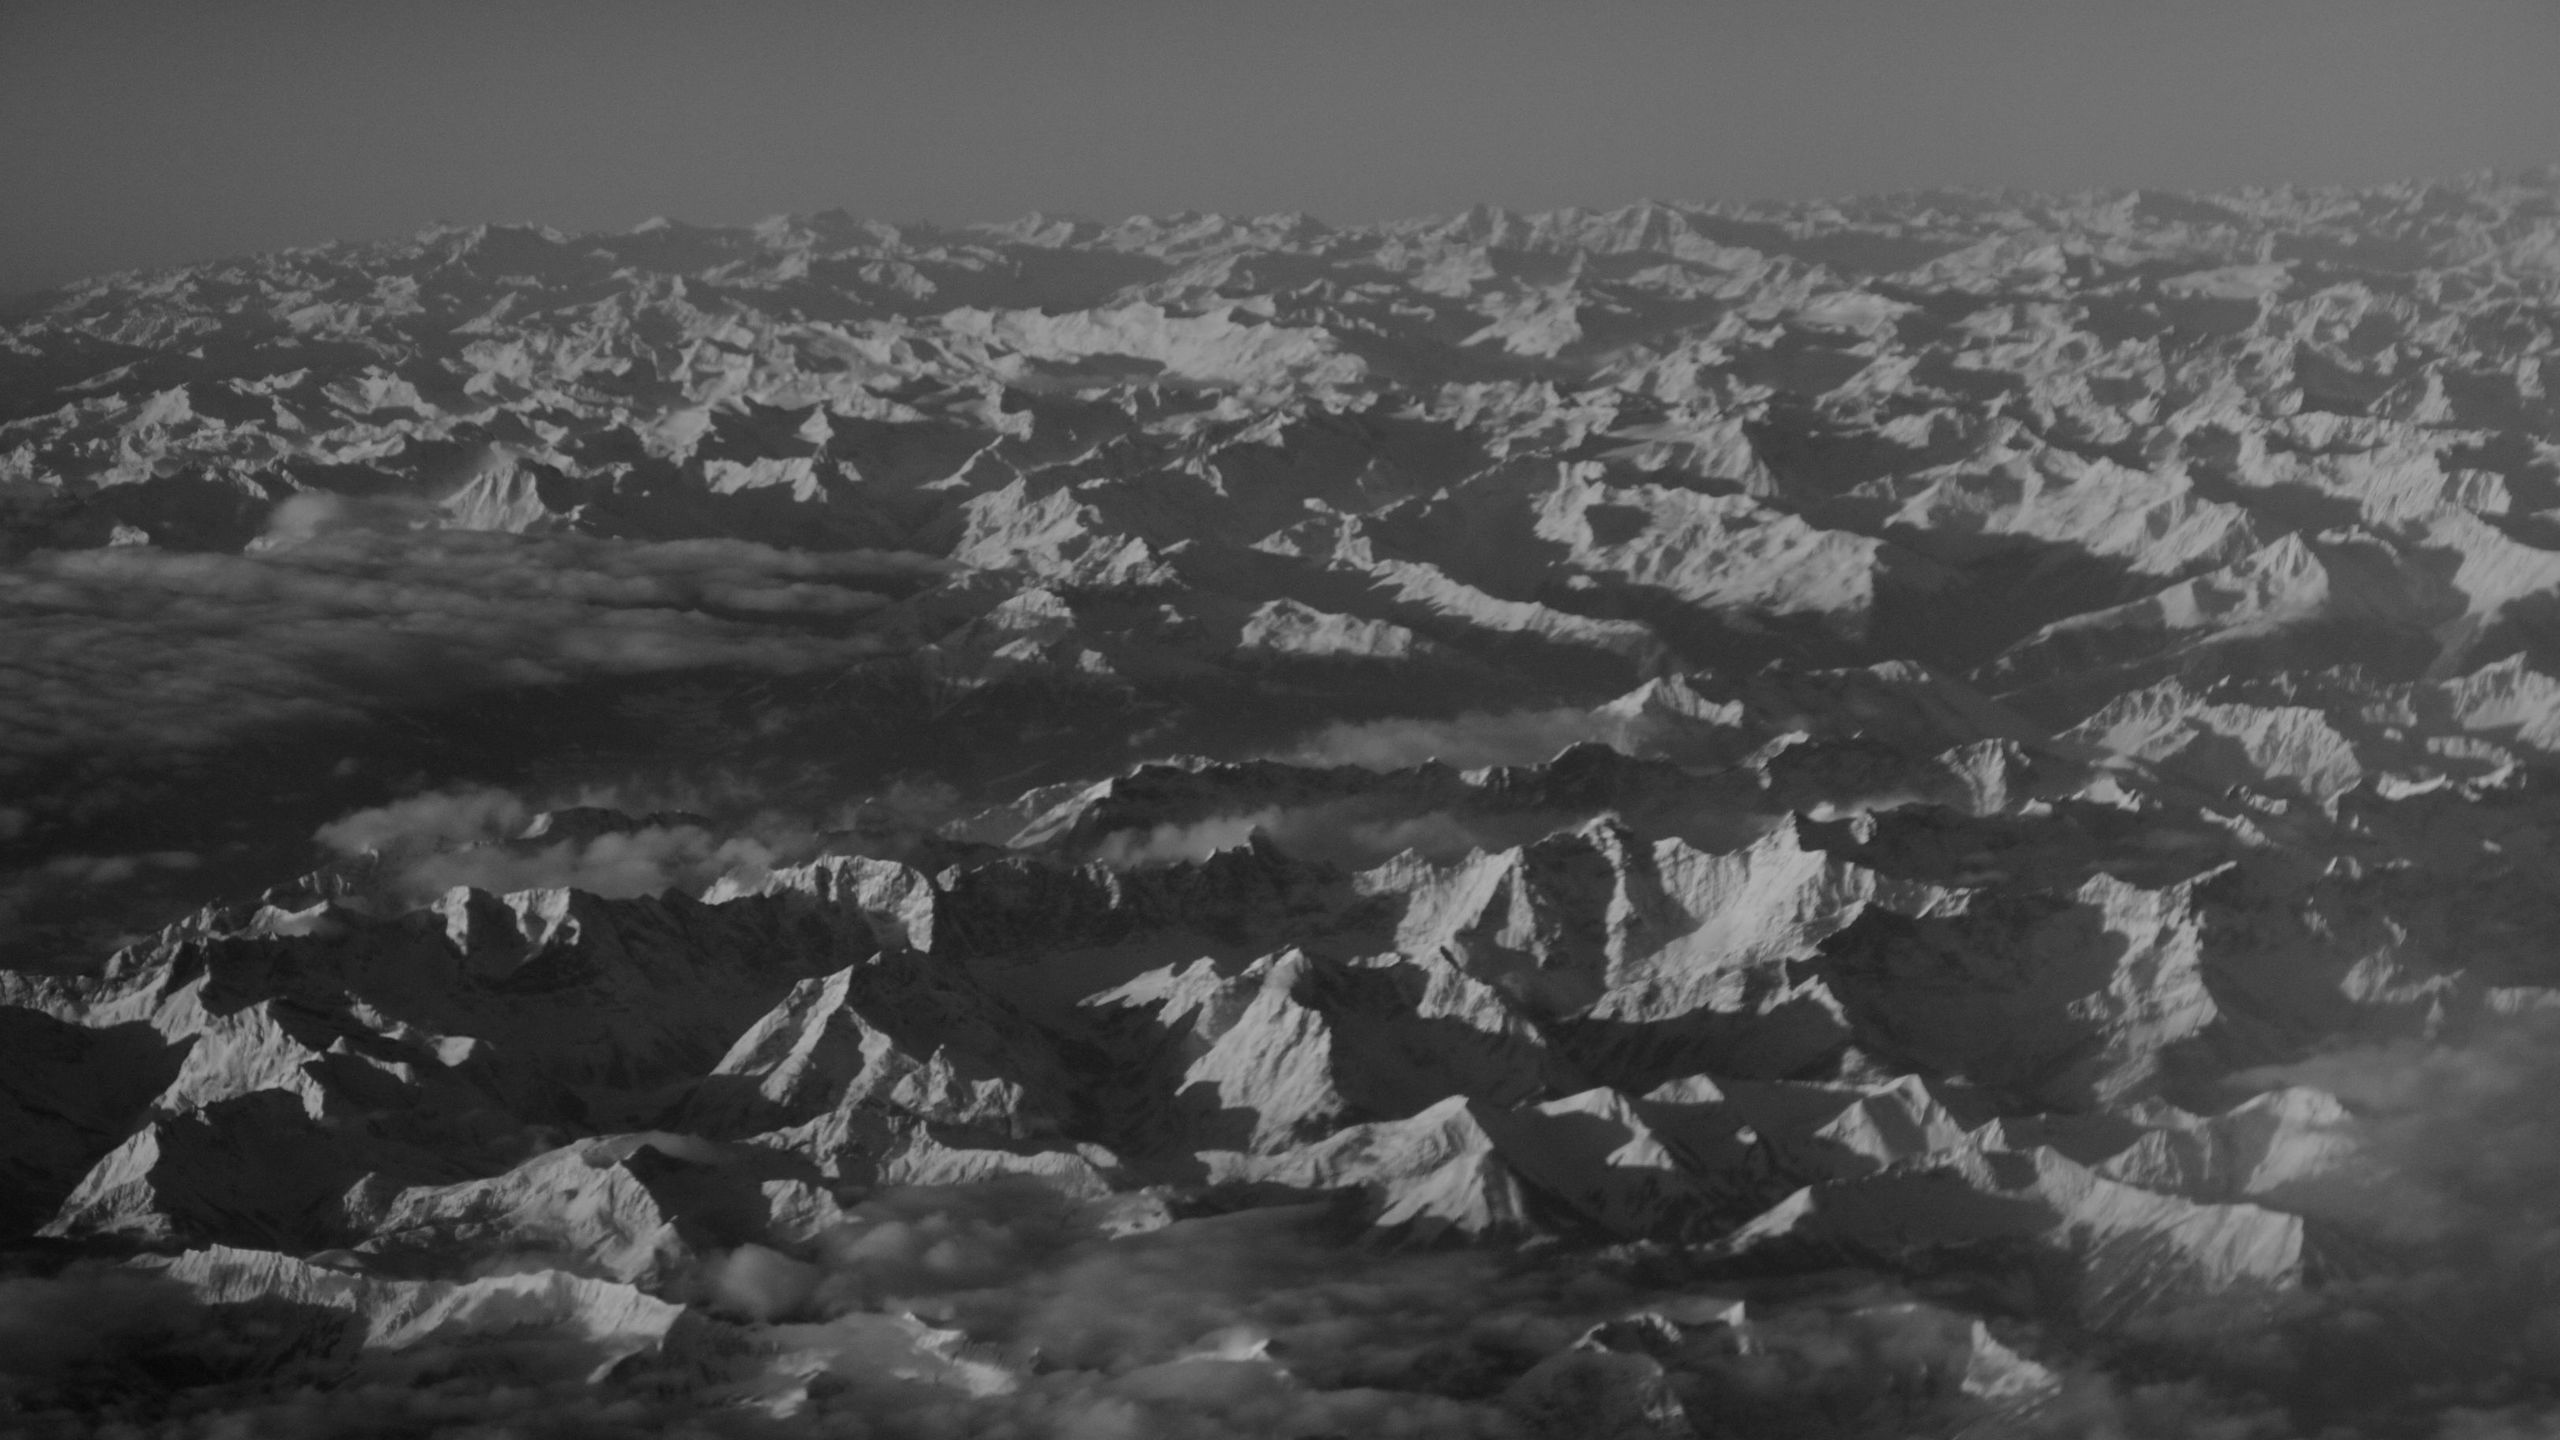 BOTPOST [BOT] The Swiss Alps taken from an airplane last week i 2560x1440